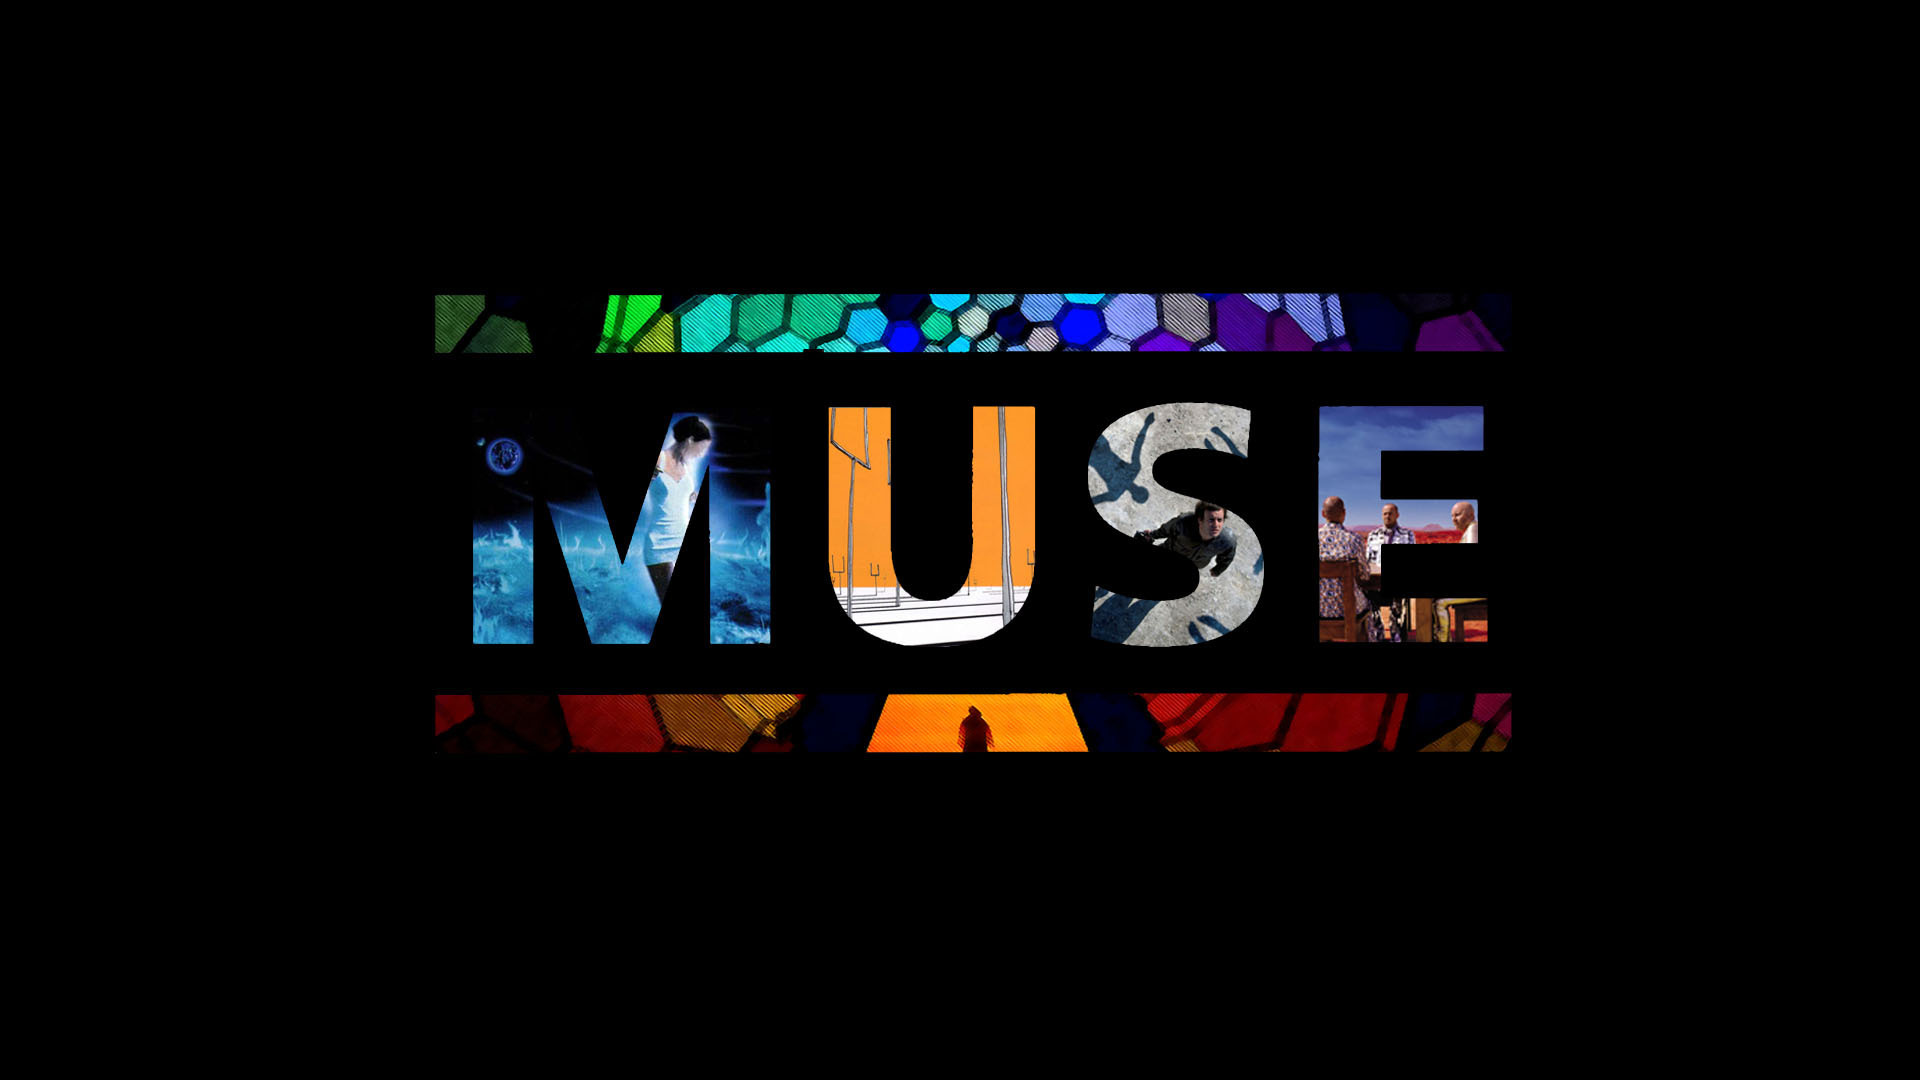 Muse cover wallpaper muse wallpaper 22667850 fanpop for Cover wallpaper